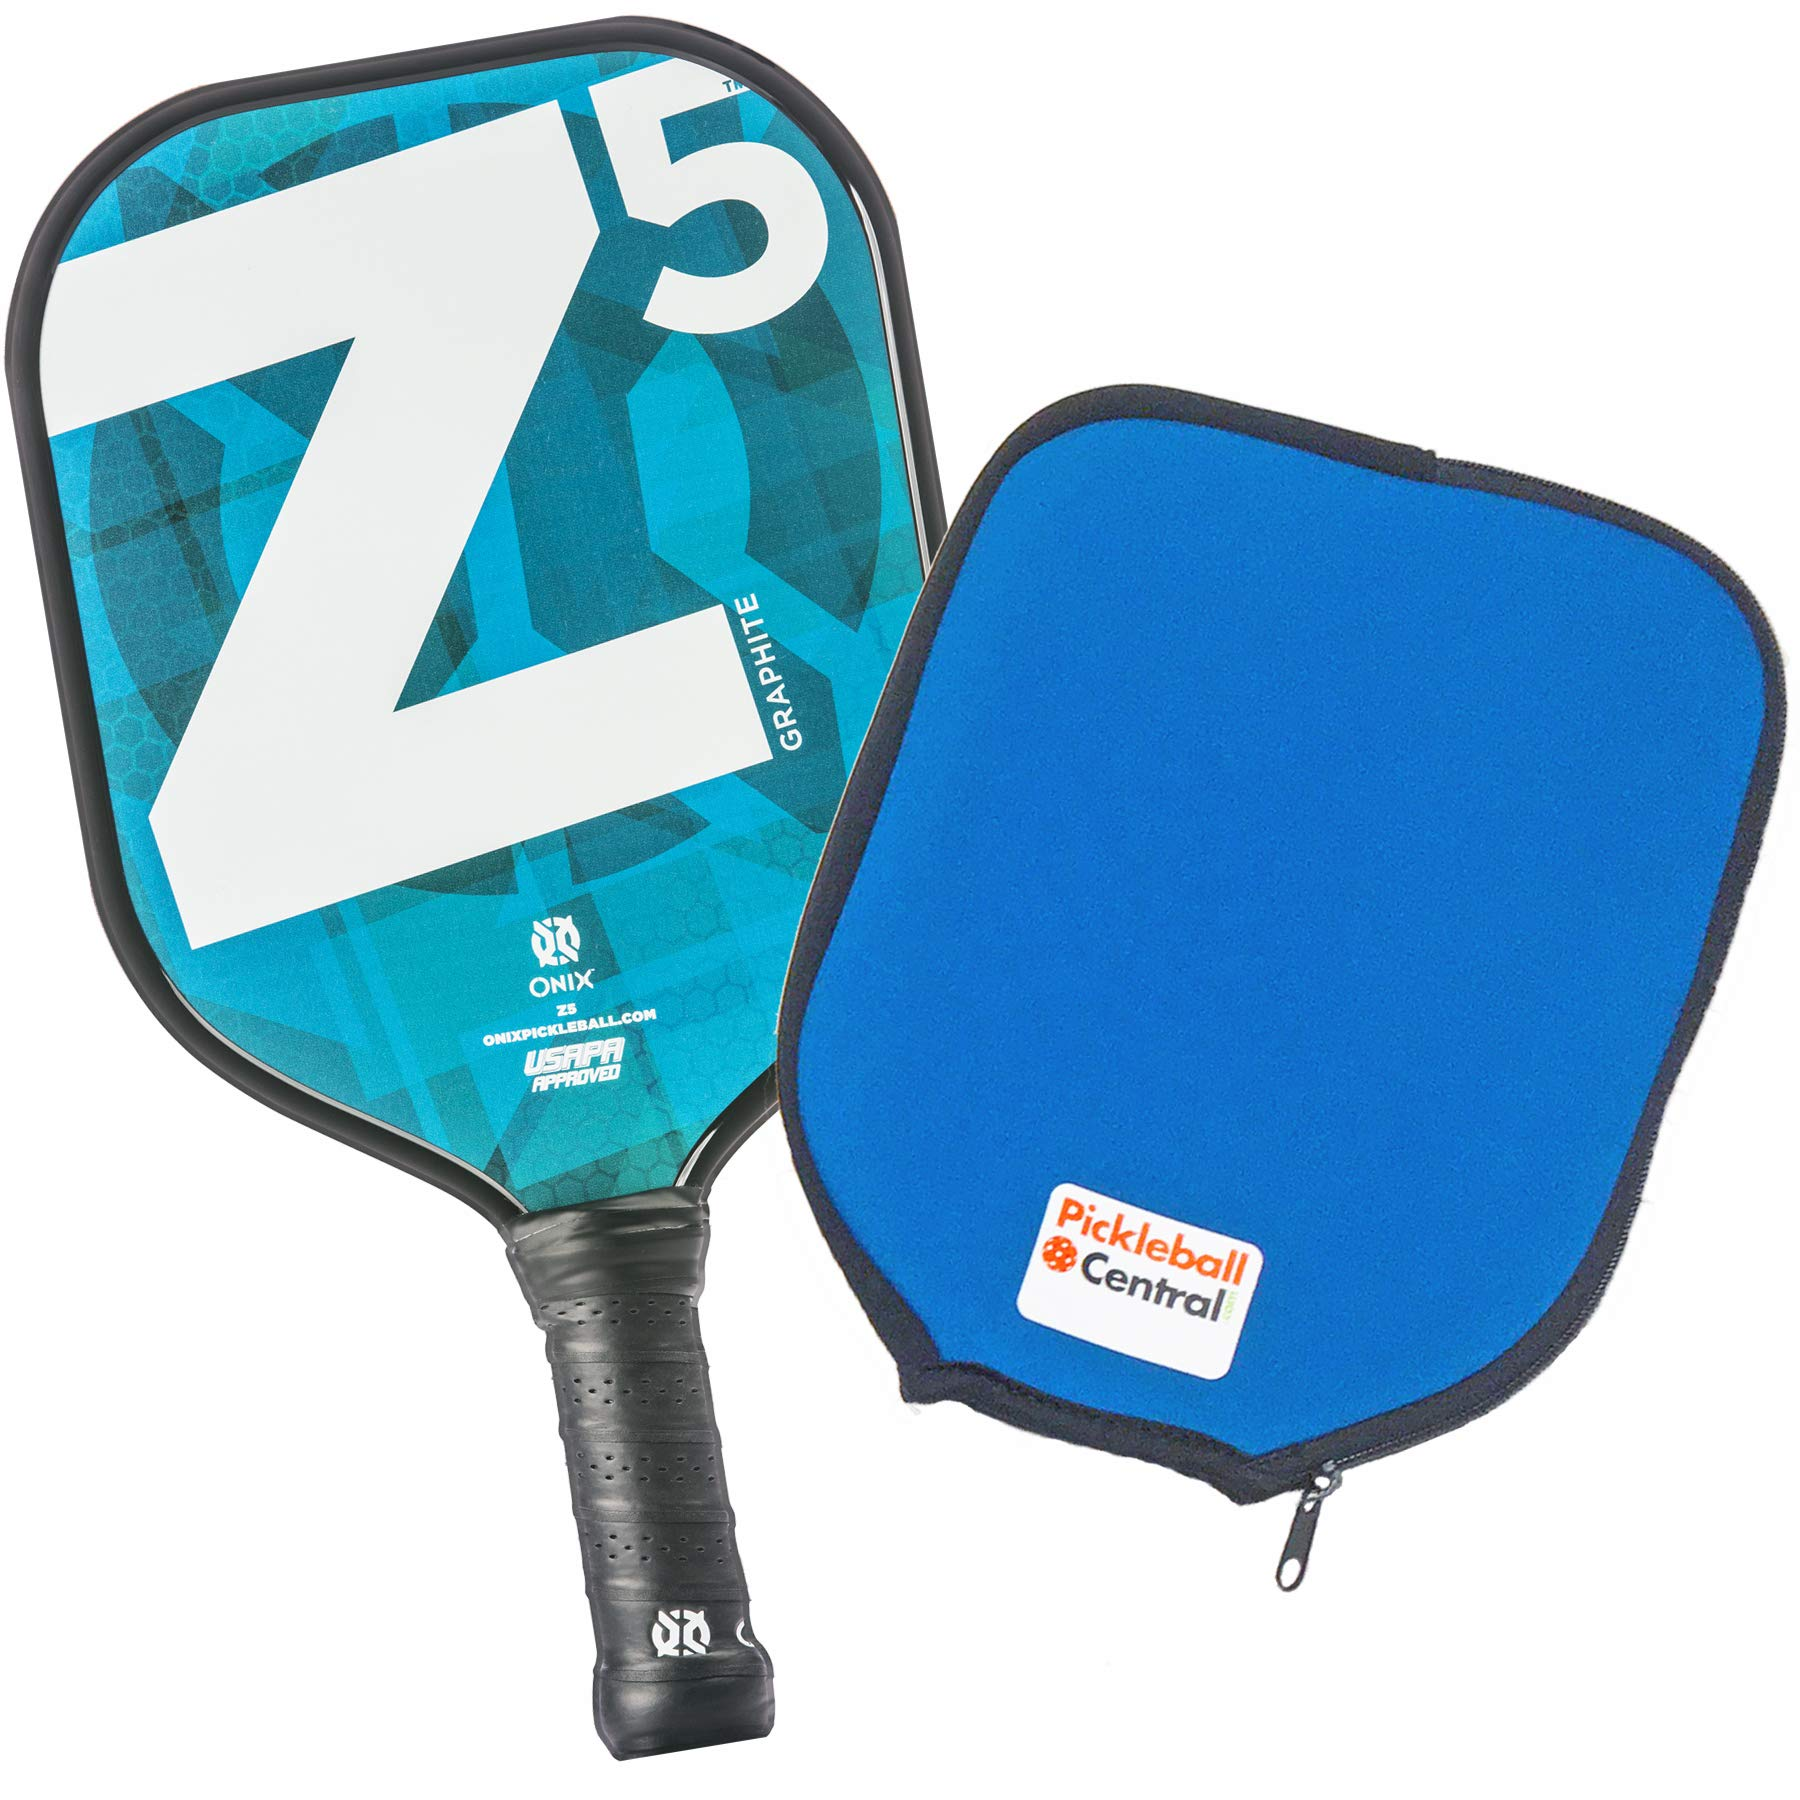 Onix Z5 Graphite Pickleball Paddle and Paddle Cover -QDTB